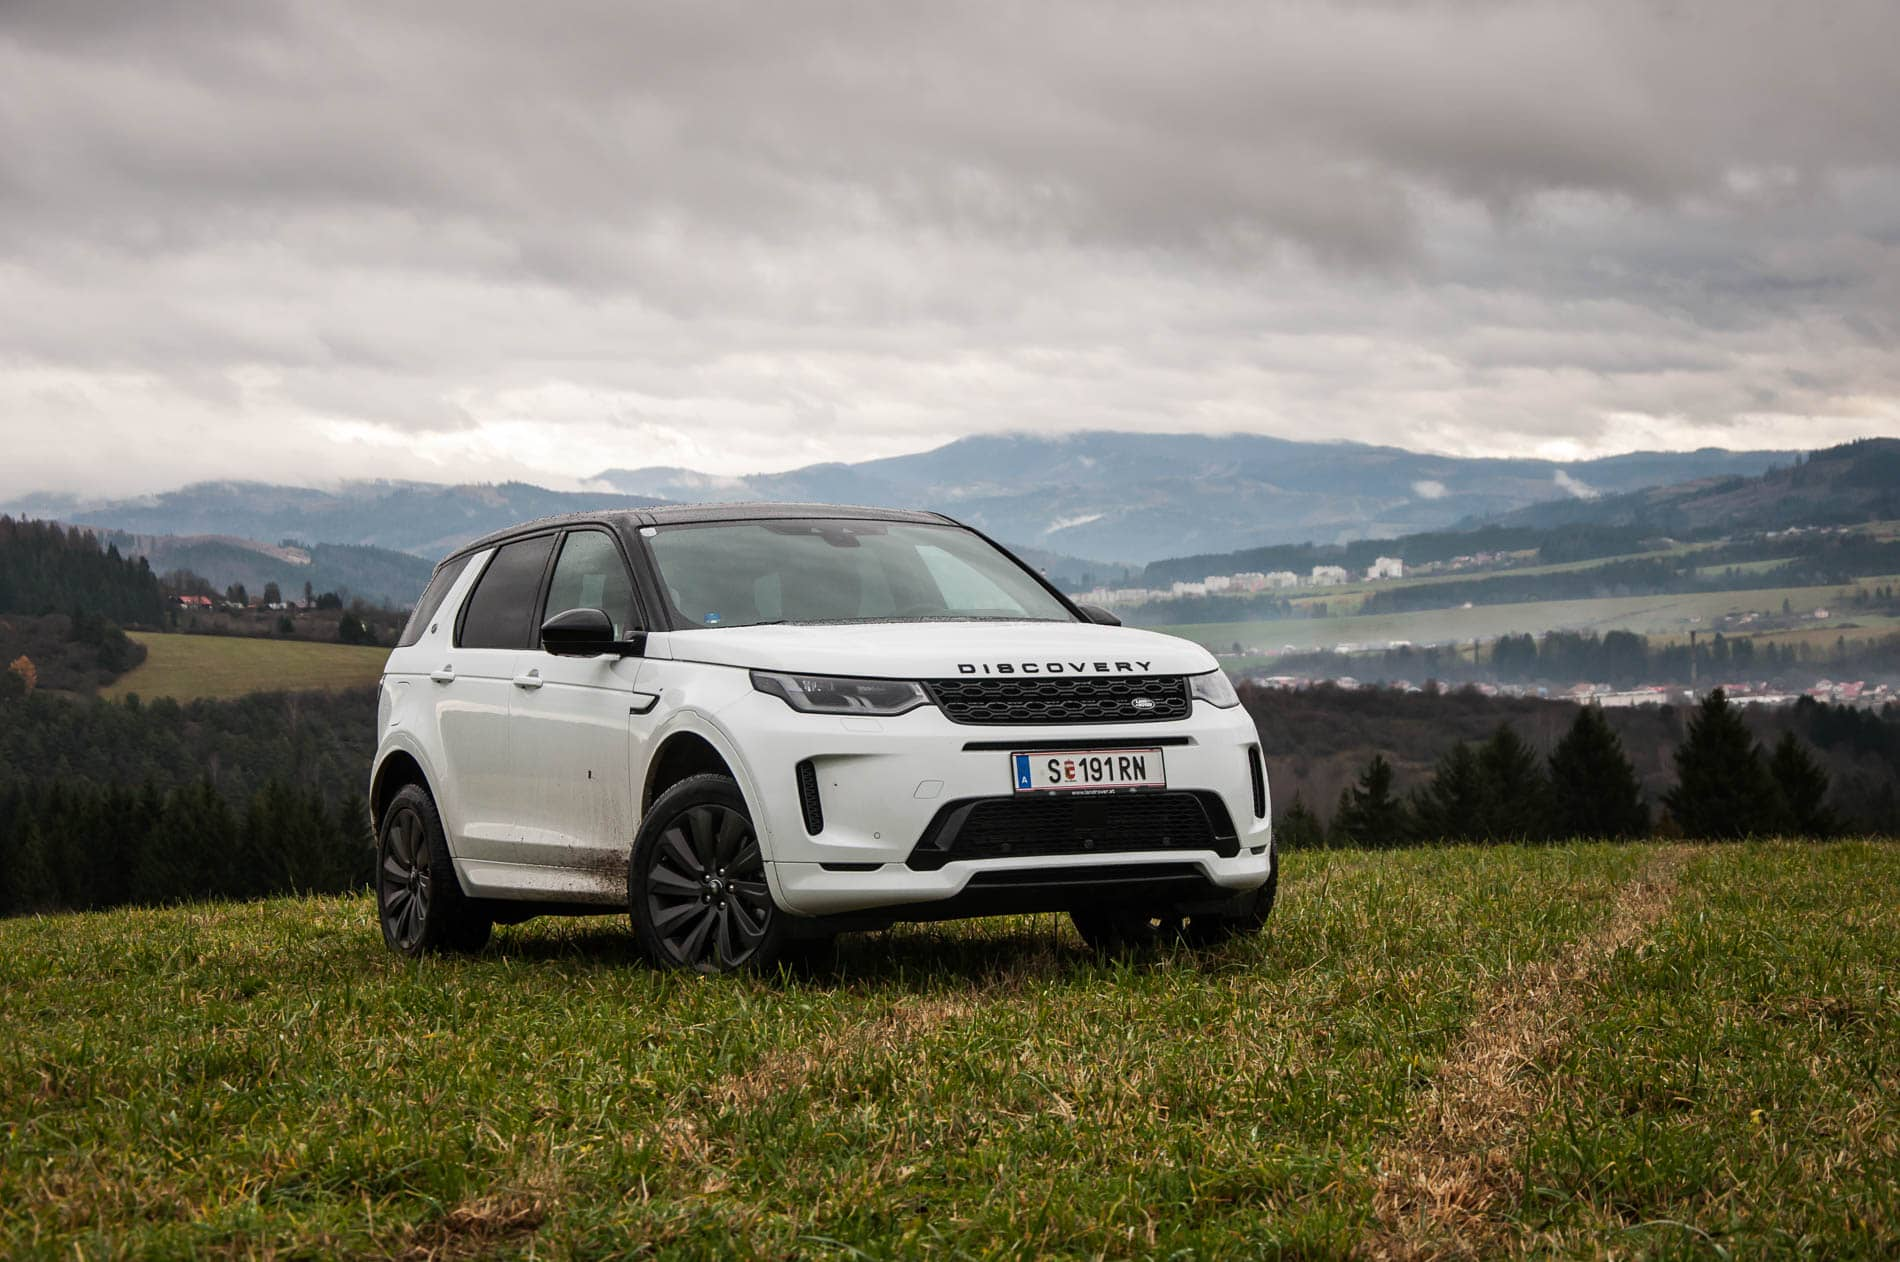 lr discovery sport 2020 (42 of 42)